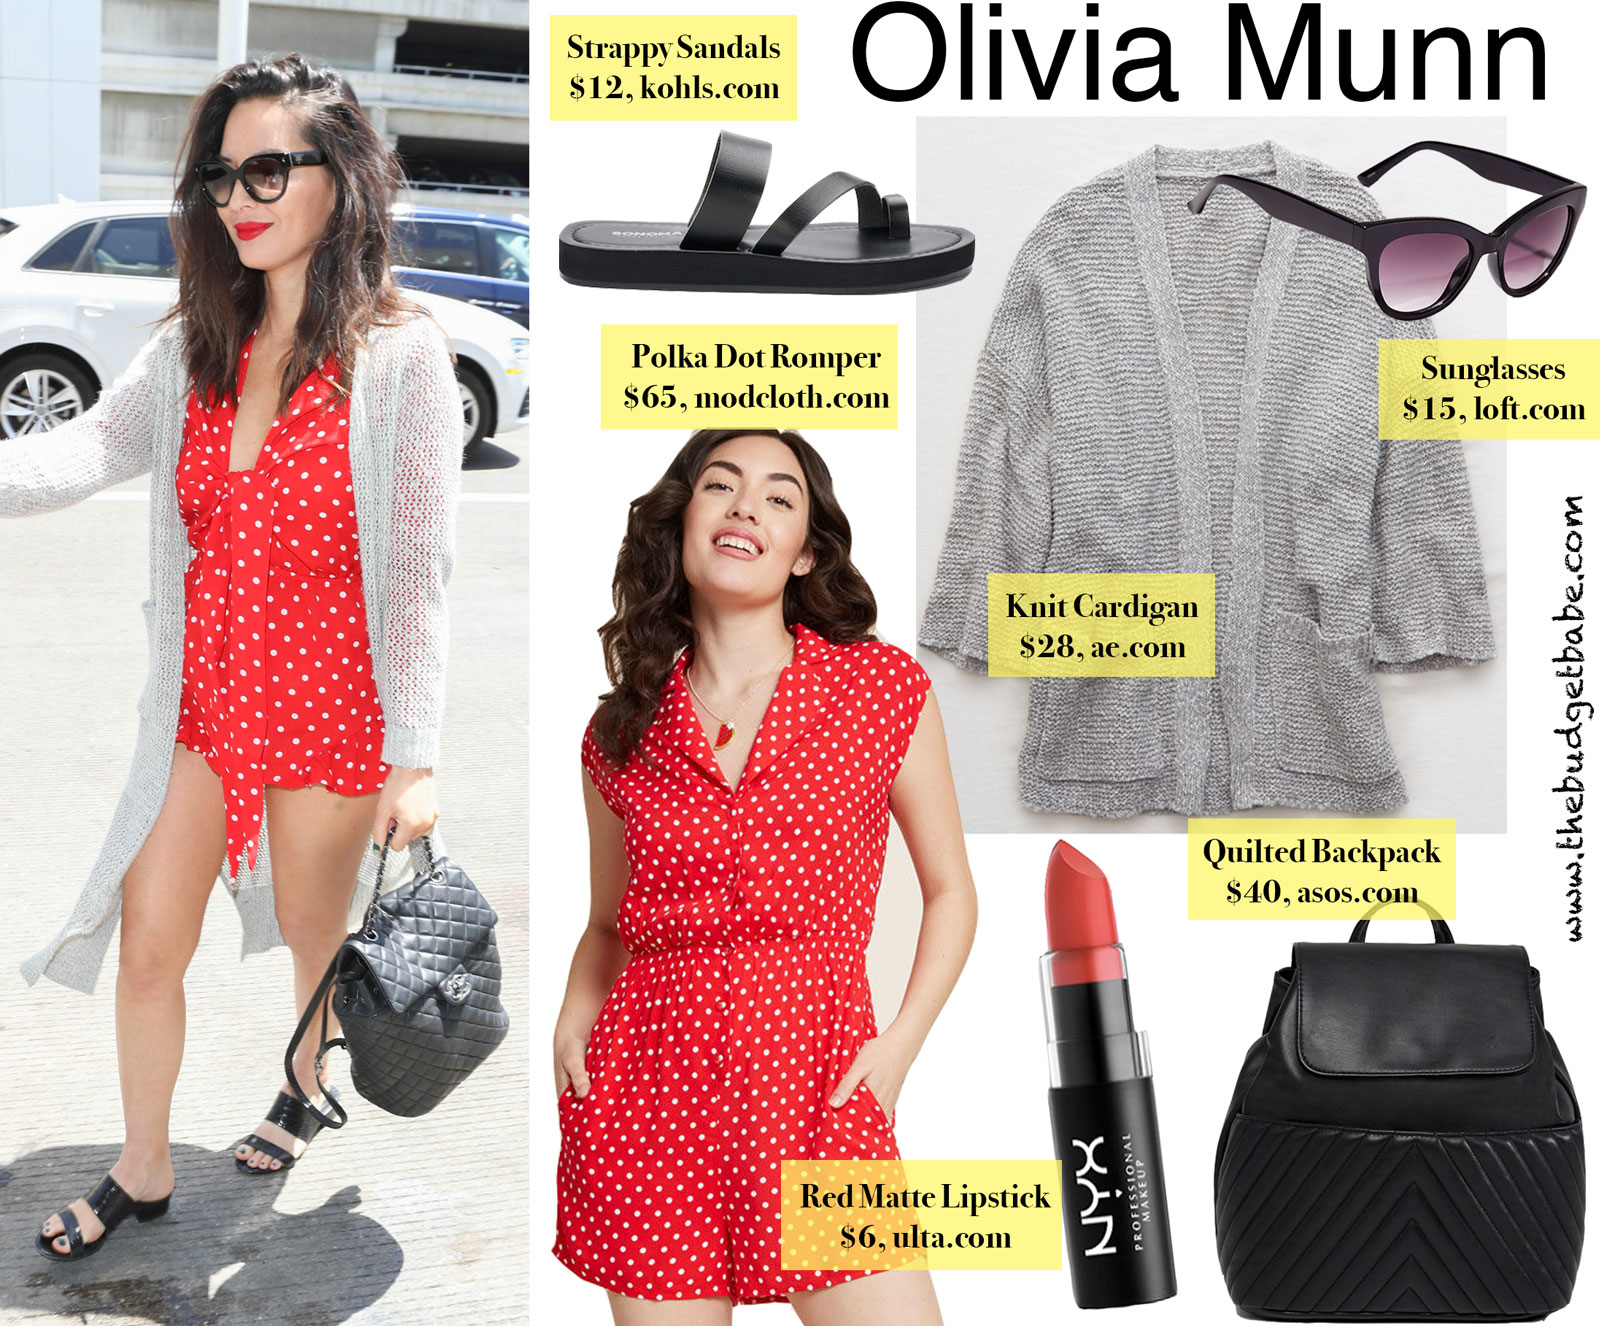 Olivia Munn Red Polka Dot Romper Look for Less